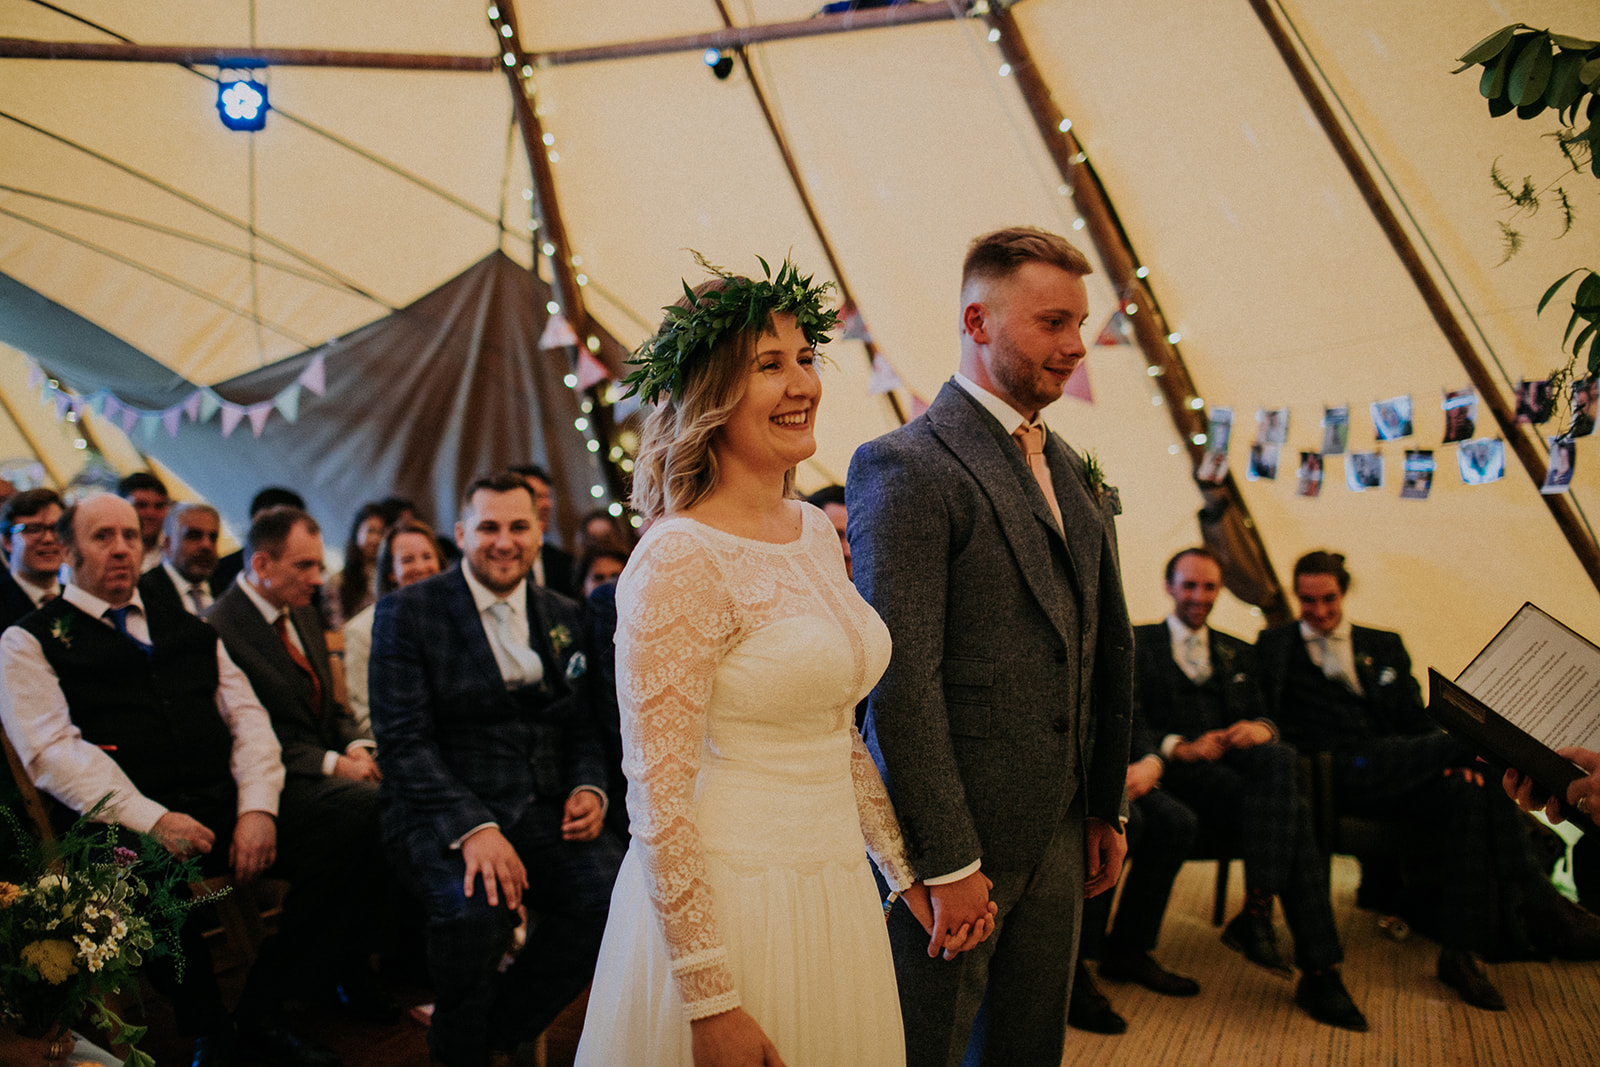 can i get married in a tipi, can we get married in a tipi. Ollie and Sophie celebrate their marriage in three giant hat tipis